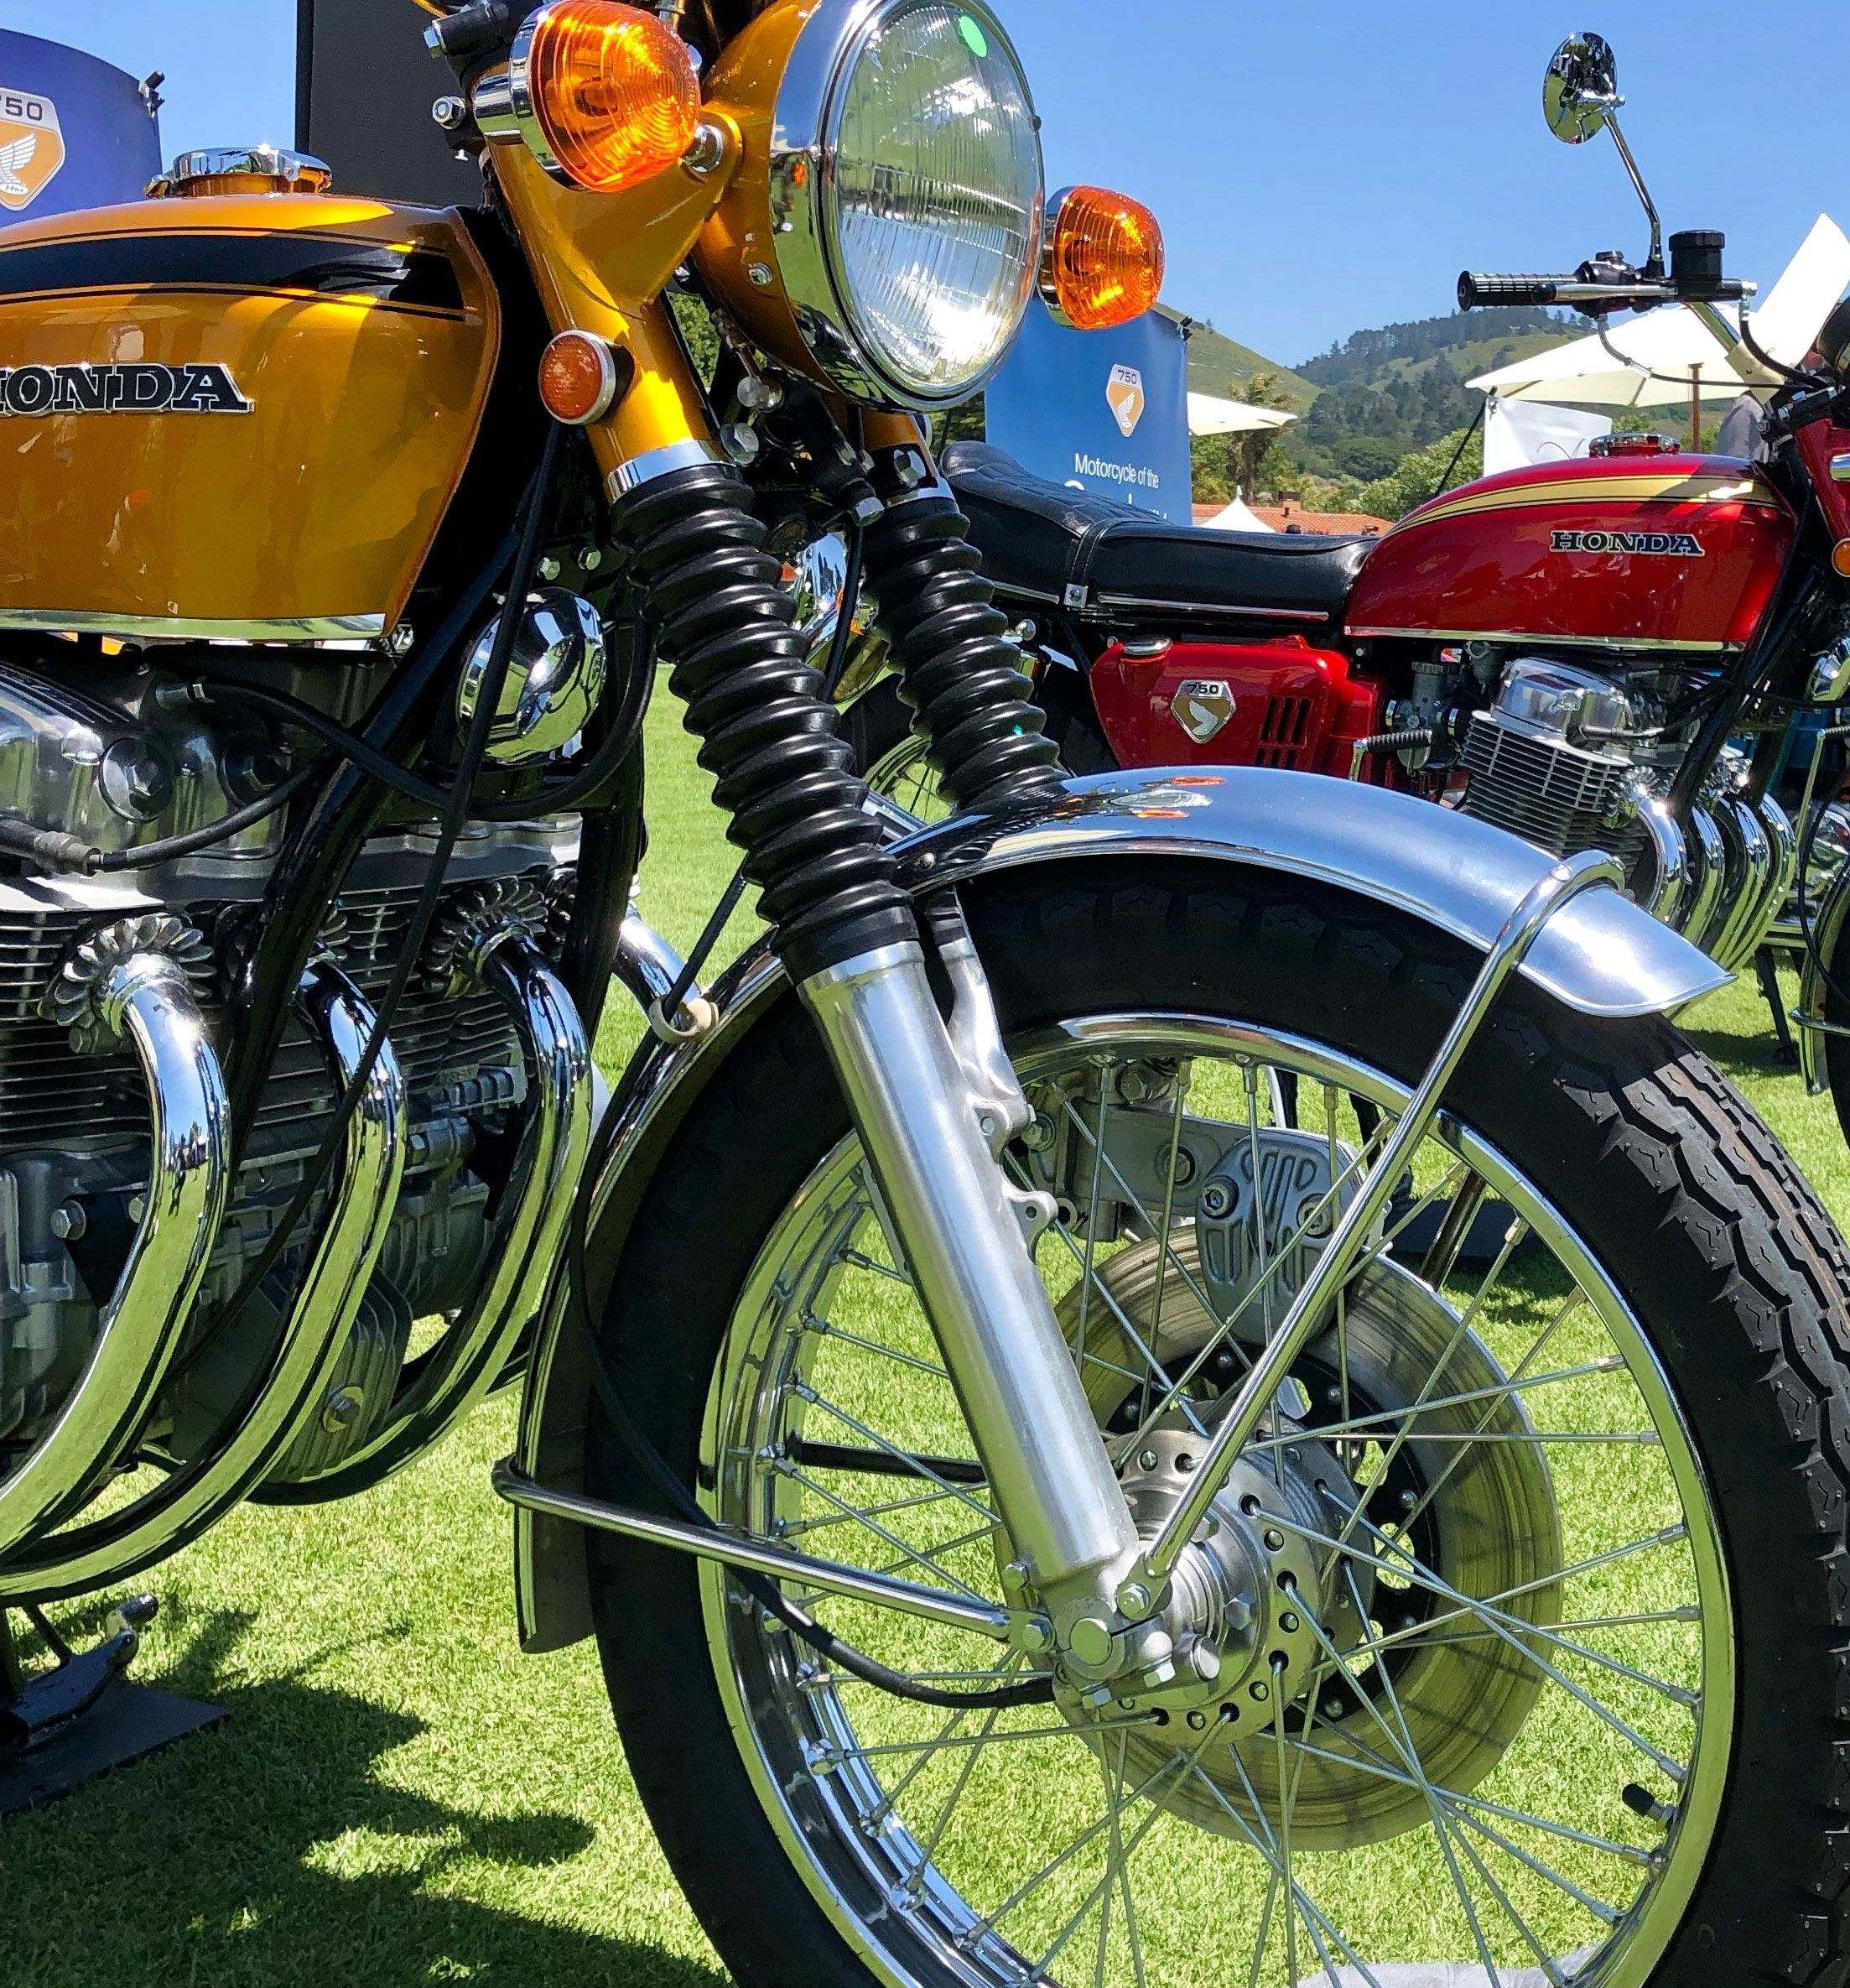 Disc brakes on the CB750 were also a first for production motorcycles of the late 20th century.